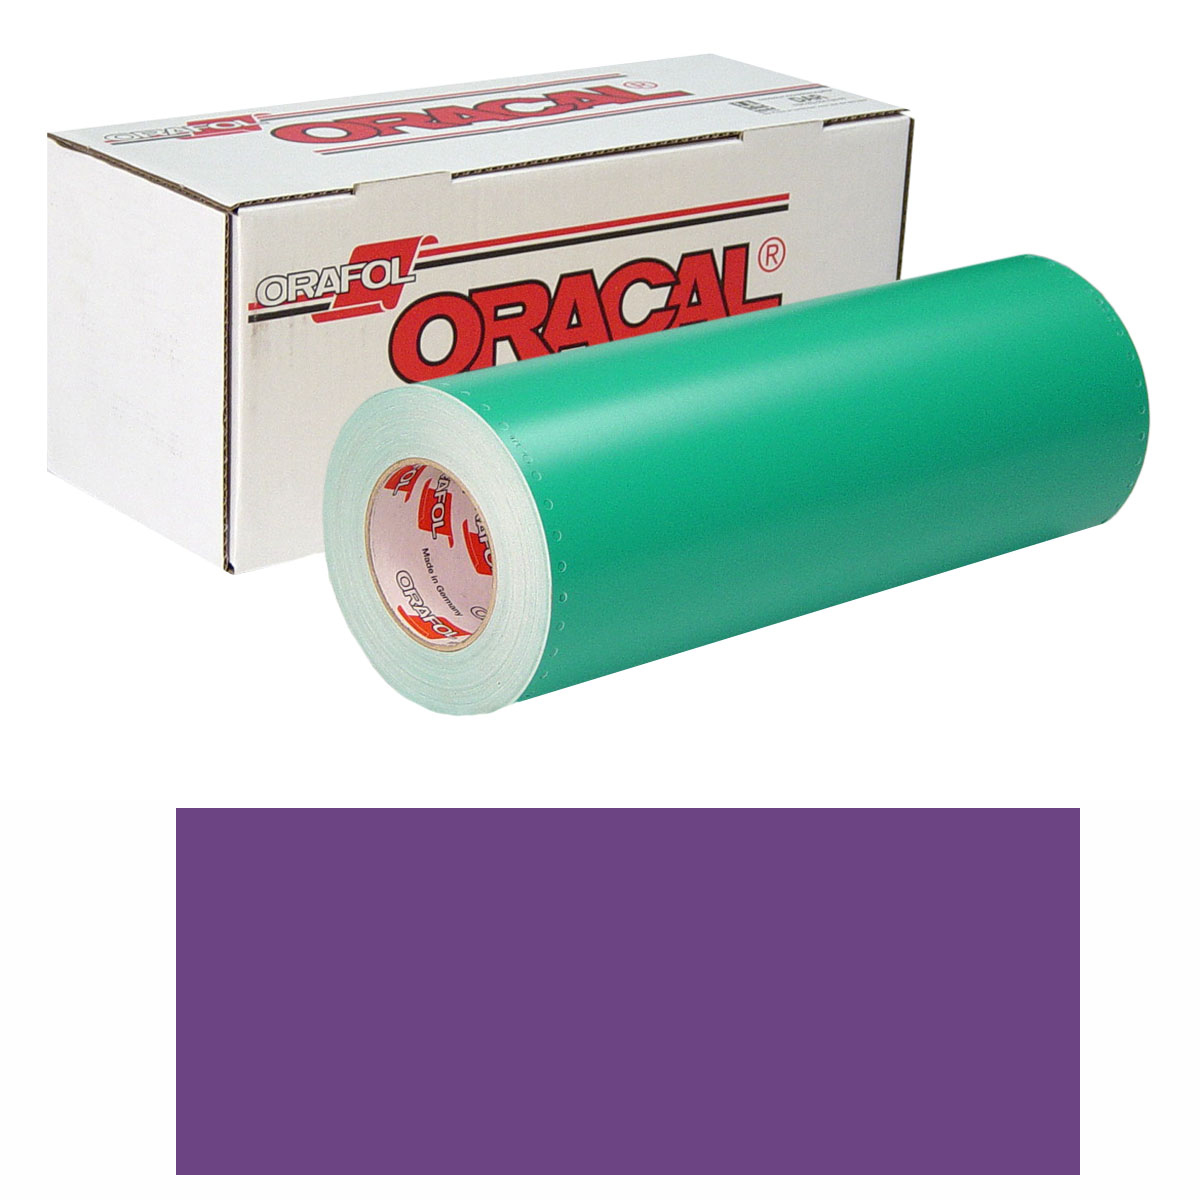 ORACAL 8500 30in X 10yd 040 Violet